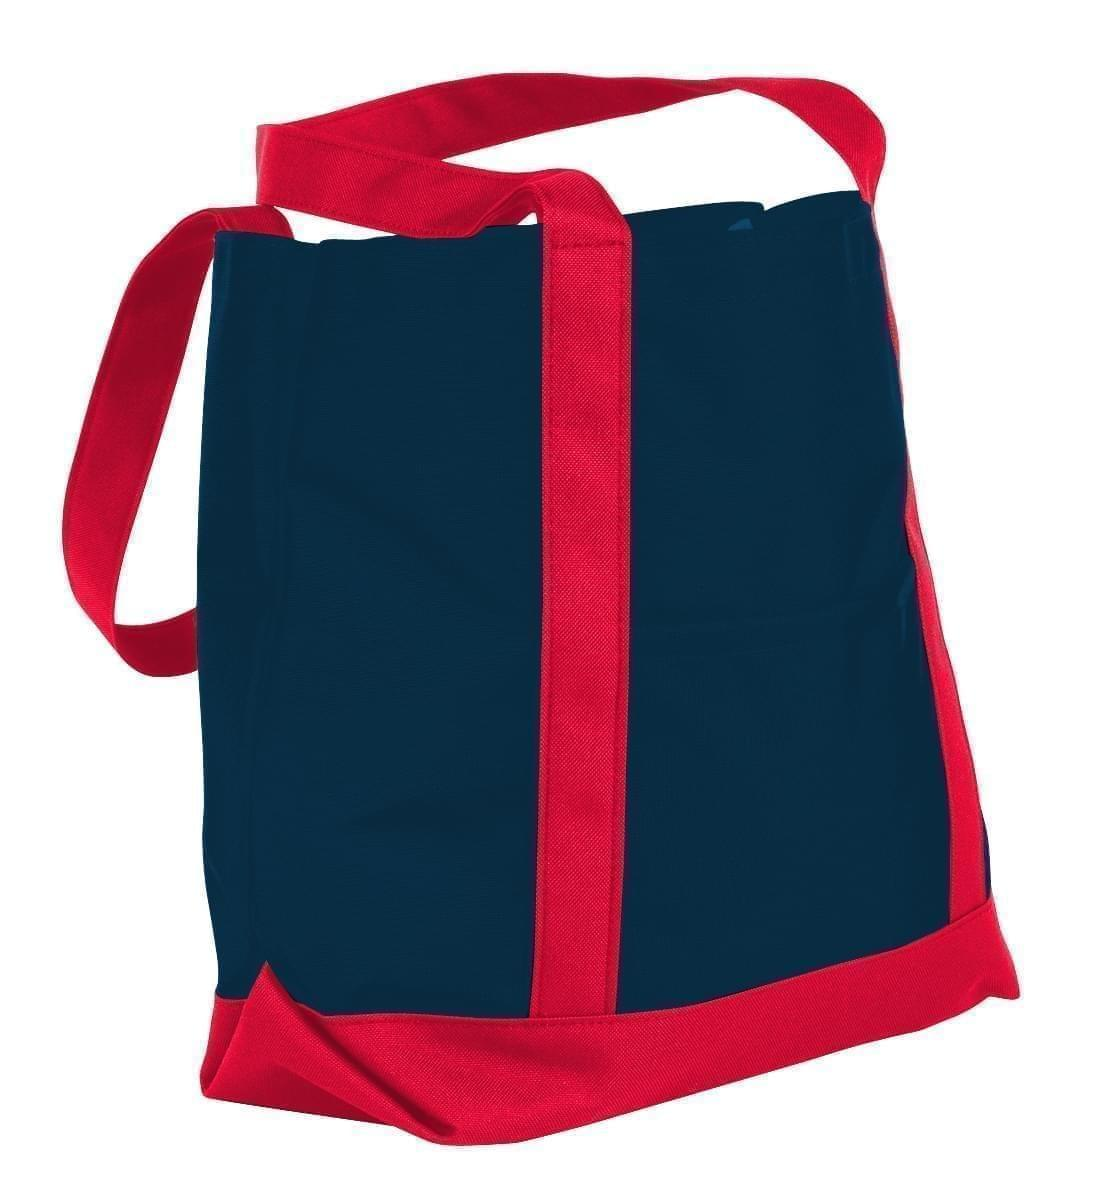 USA Made Nylon Poly Boat Tote Bags, Navy-Red, XAACL1UAWL